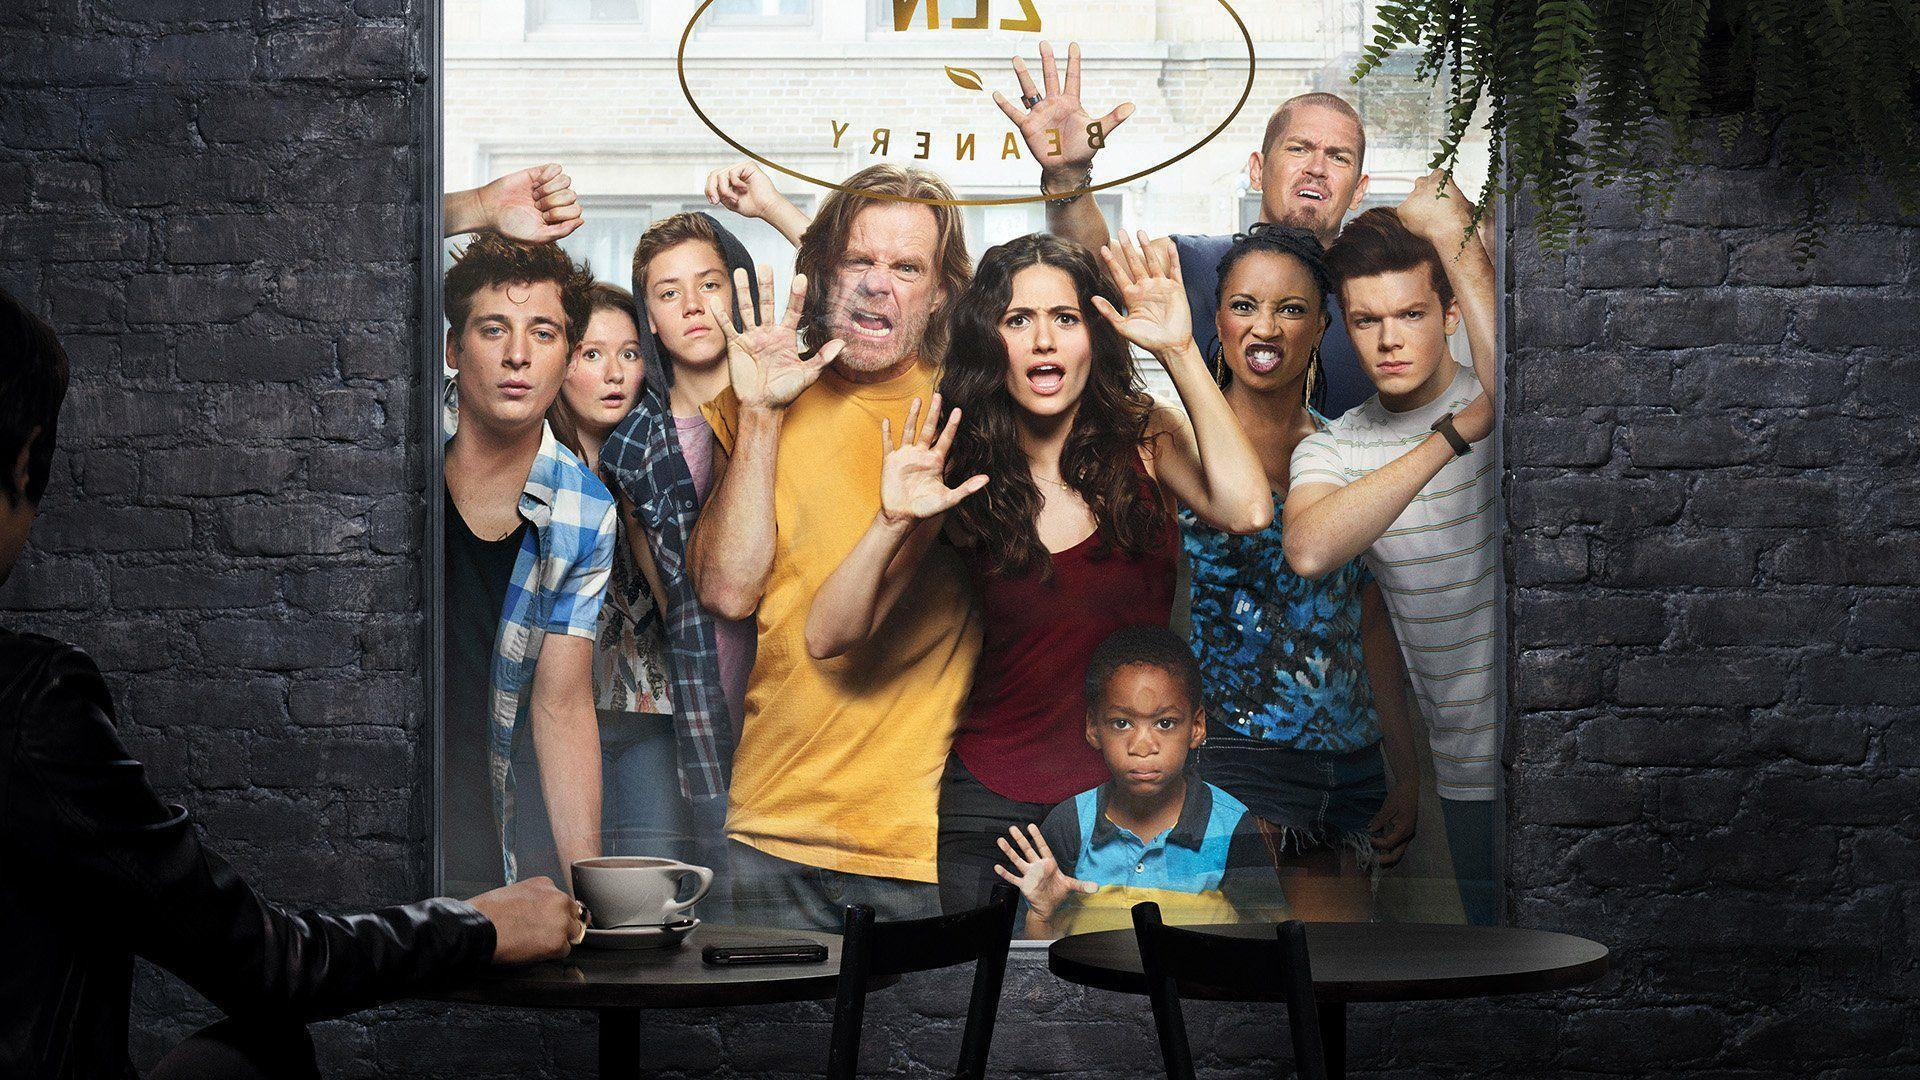 16 Shameless (US) HD Wallpapers | Backgrounds - Wallpaper Abyss